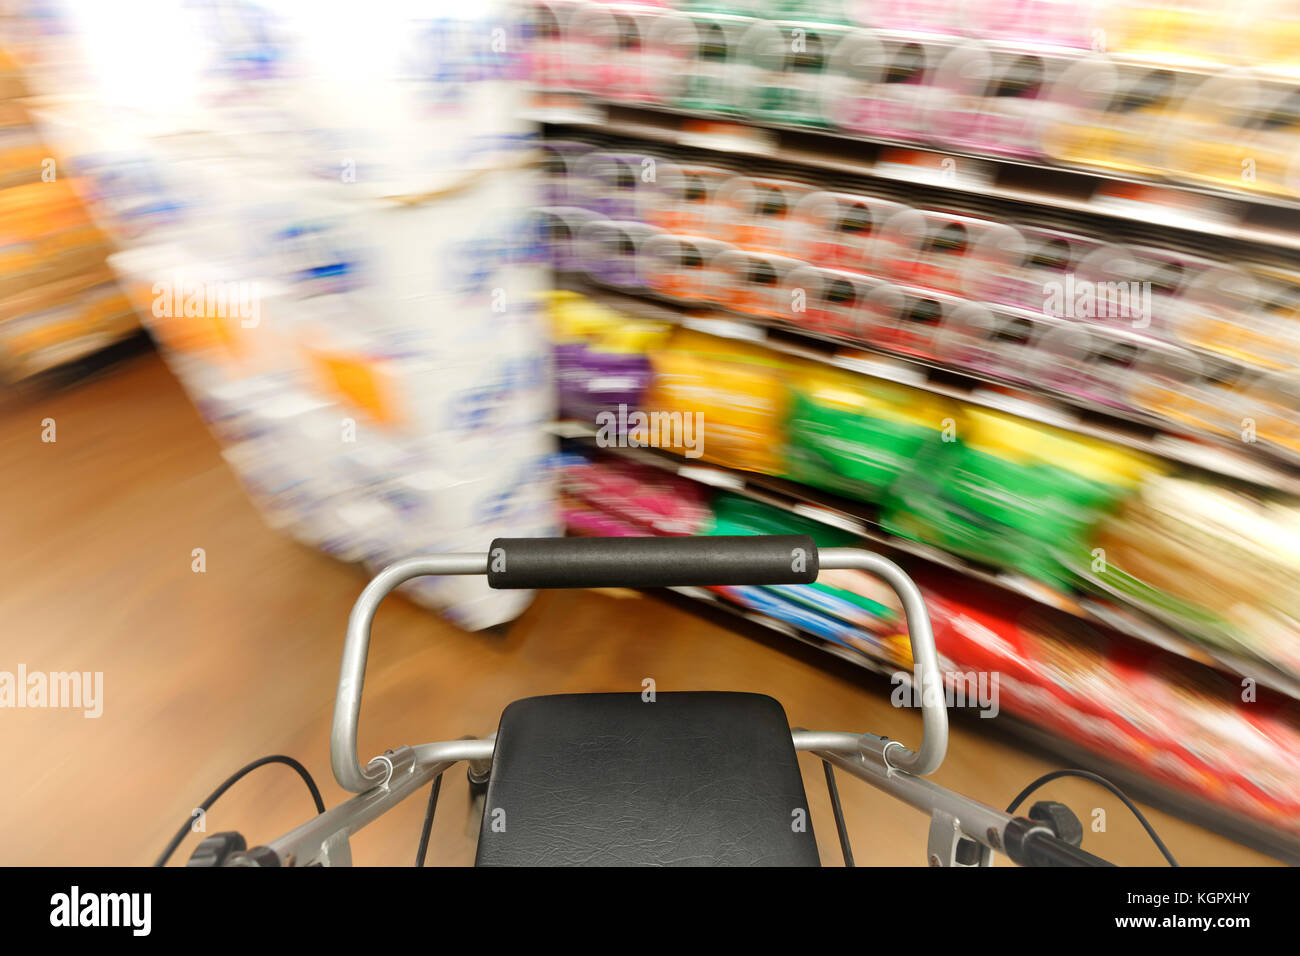 First person view of person with disability who is disoriented walking down a shopping aisle Stock Photo